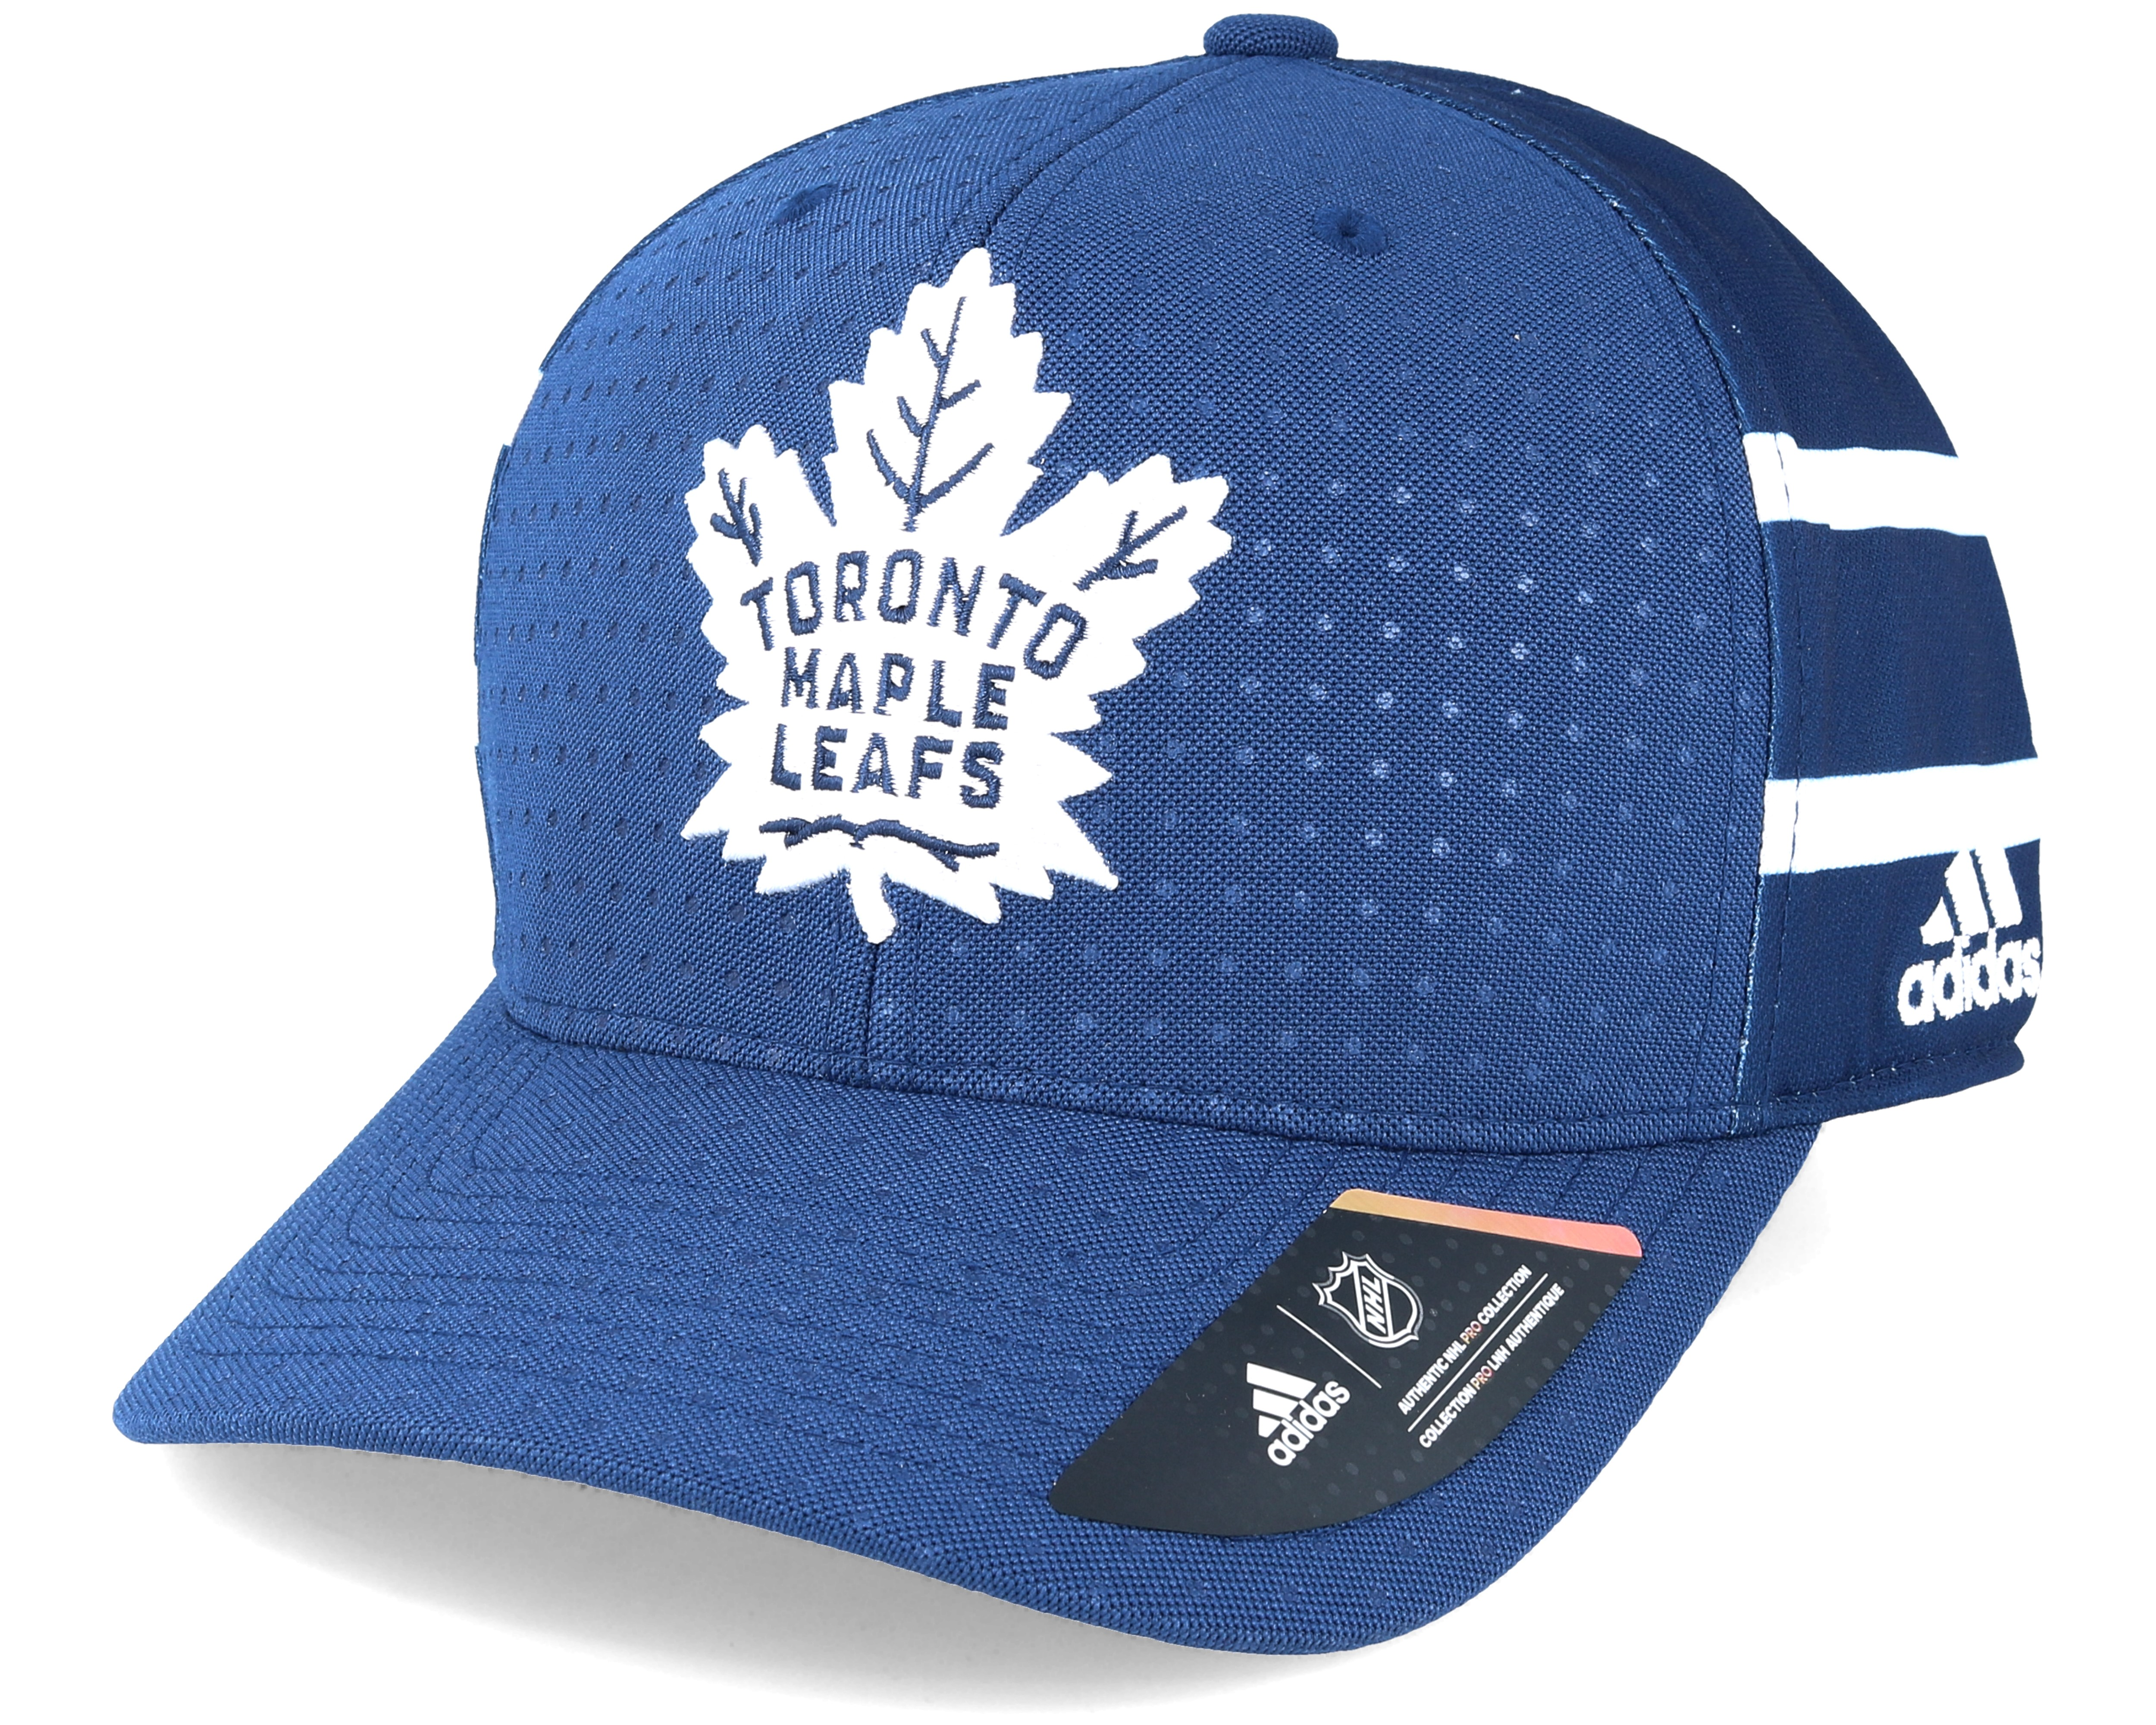 newest 1a8e8 f1215 ... italy toronto maple leafs draft structured blue flexfit adidas caps  1bc04 a5cd7 ...